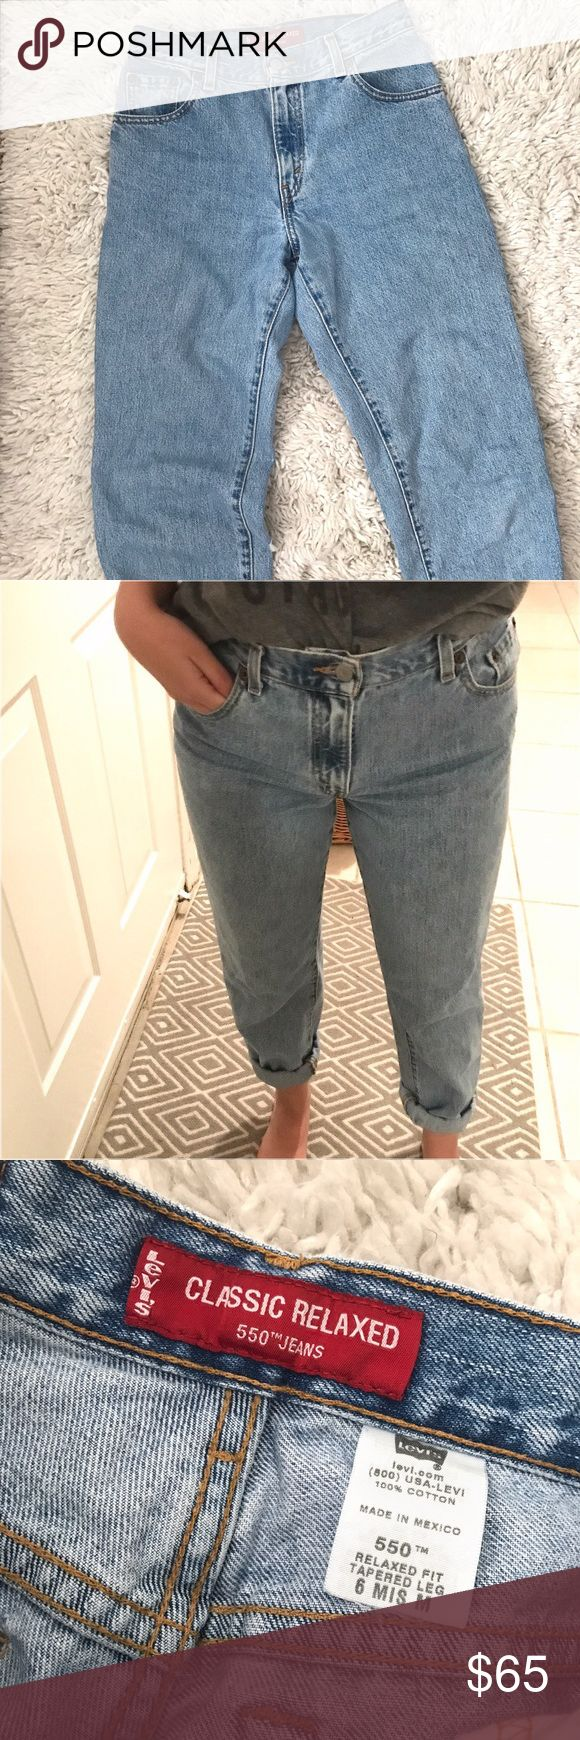 """Levi's 550 Classic Relaxed Mom Jeans Super cute vintage Levi's! Levi's 550. I'm a size 27 and 5'3 rolled up and they fit great! Would best fit 26-27. No signs of wear. 28"""" inseam. Relaxed fit with a tapered leg. High rise. Light wash. Levi's Jeans"""